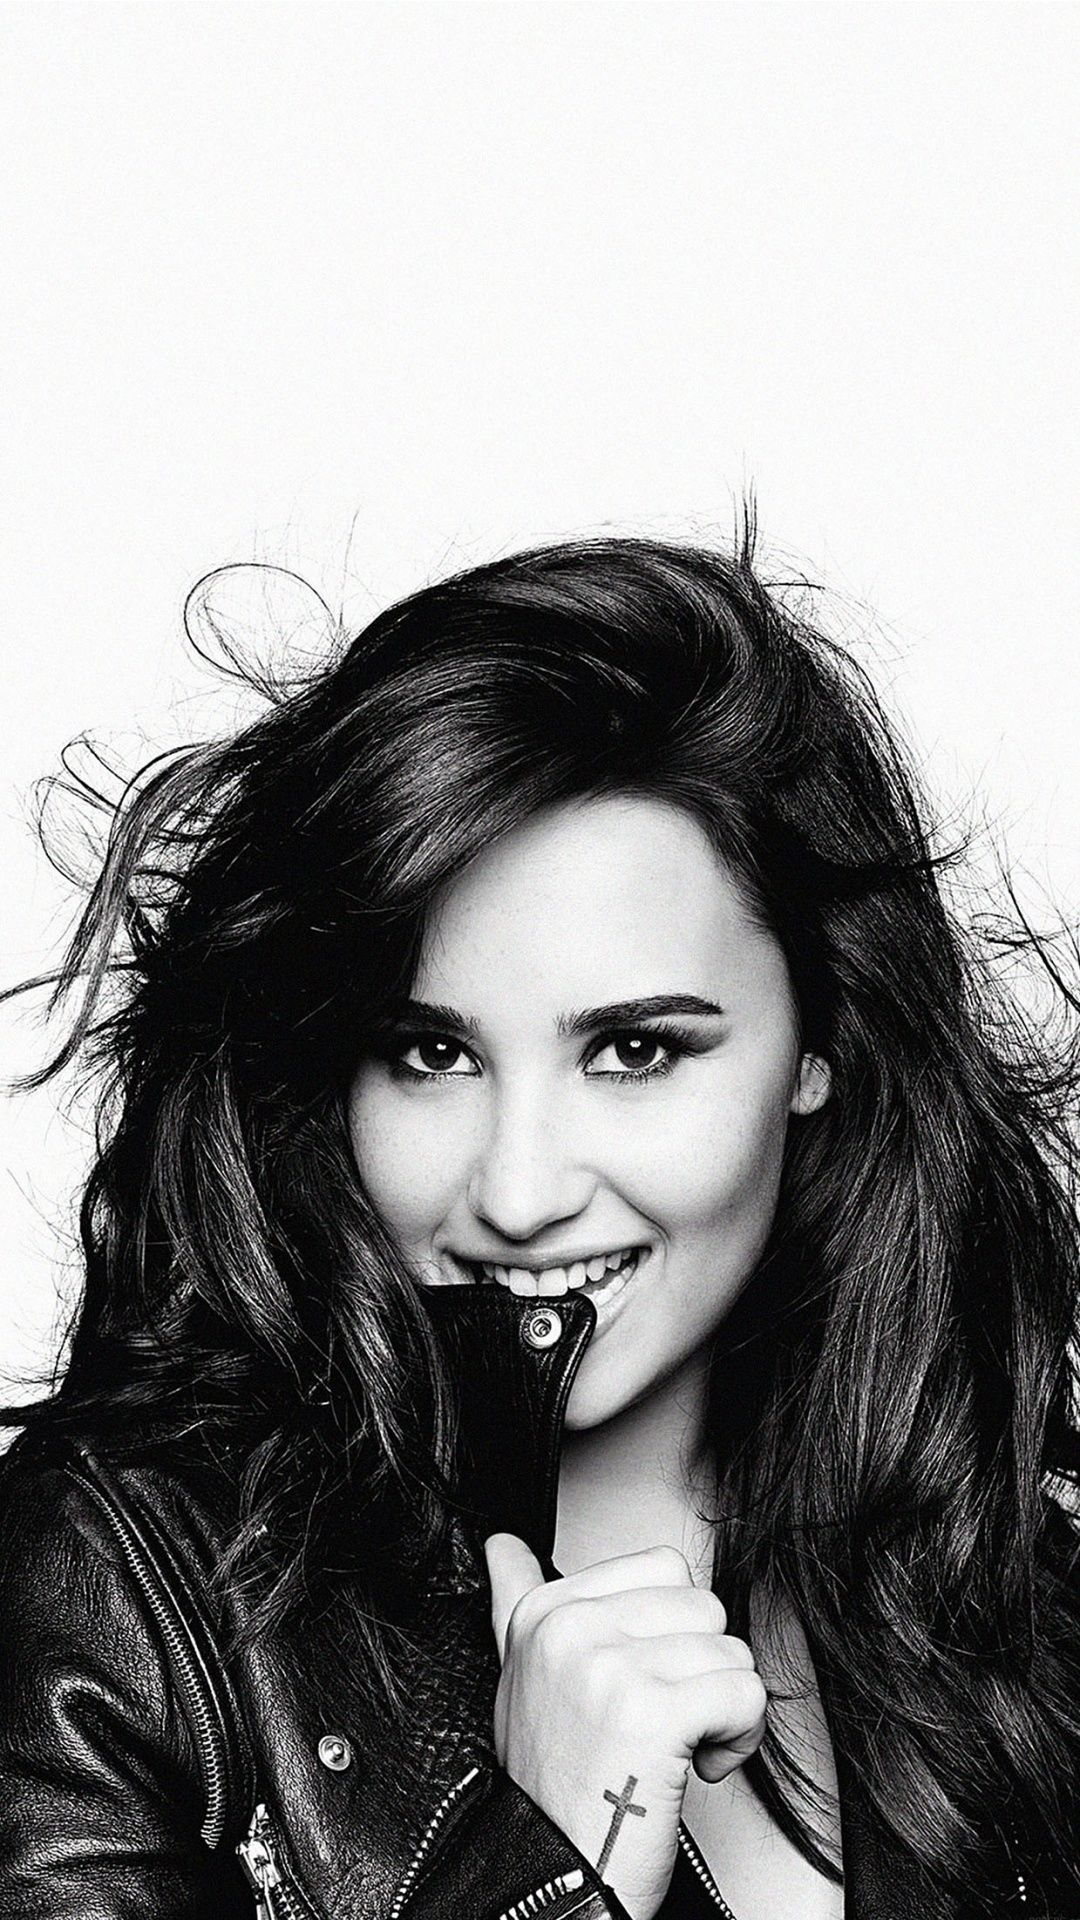 demi lovato black and white wallpaper for iphone